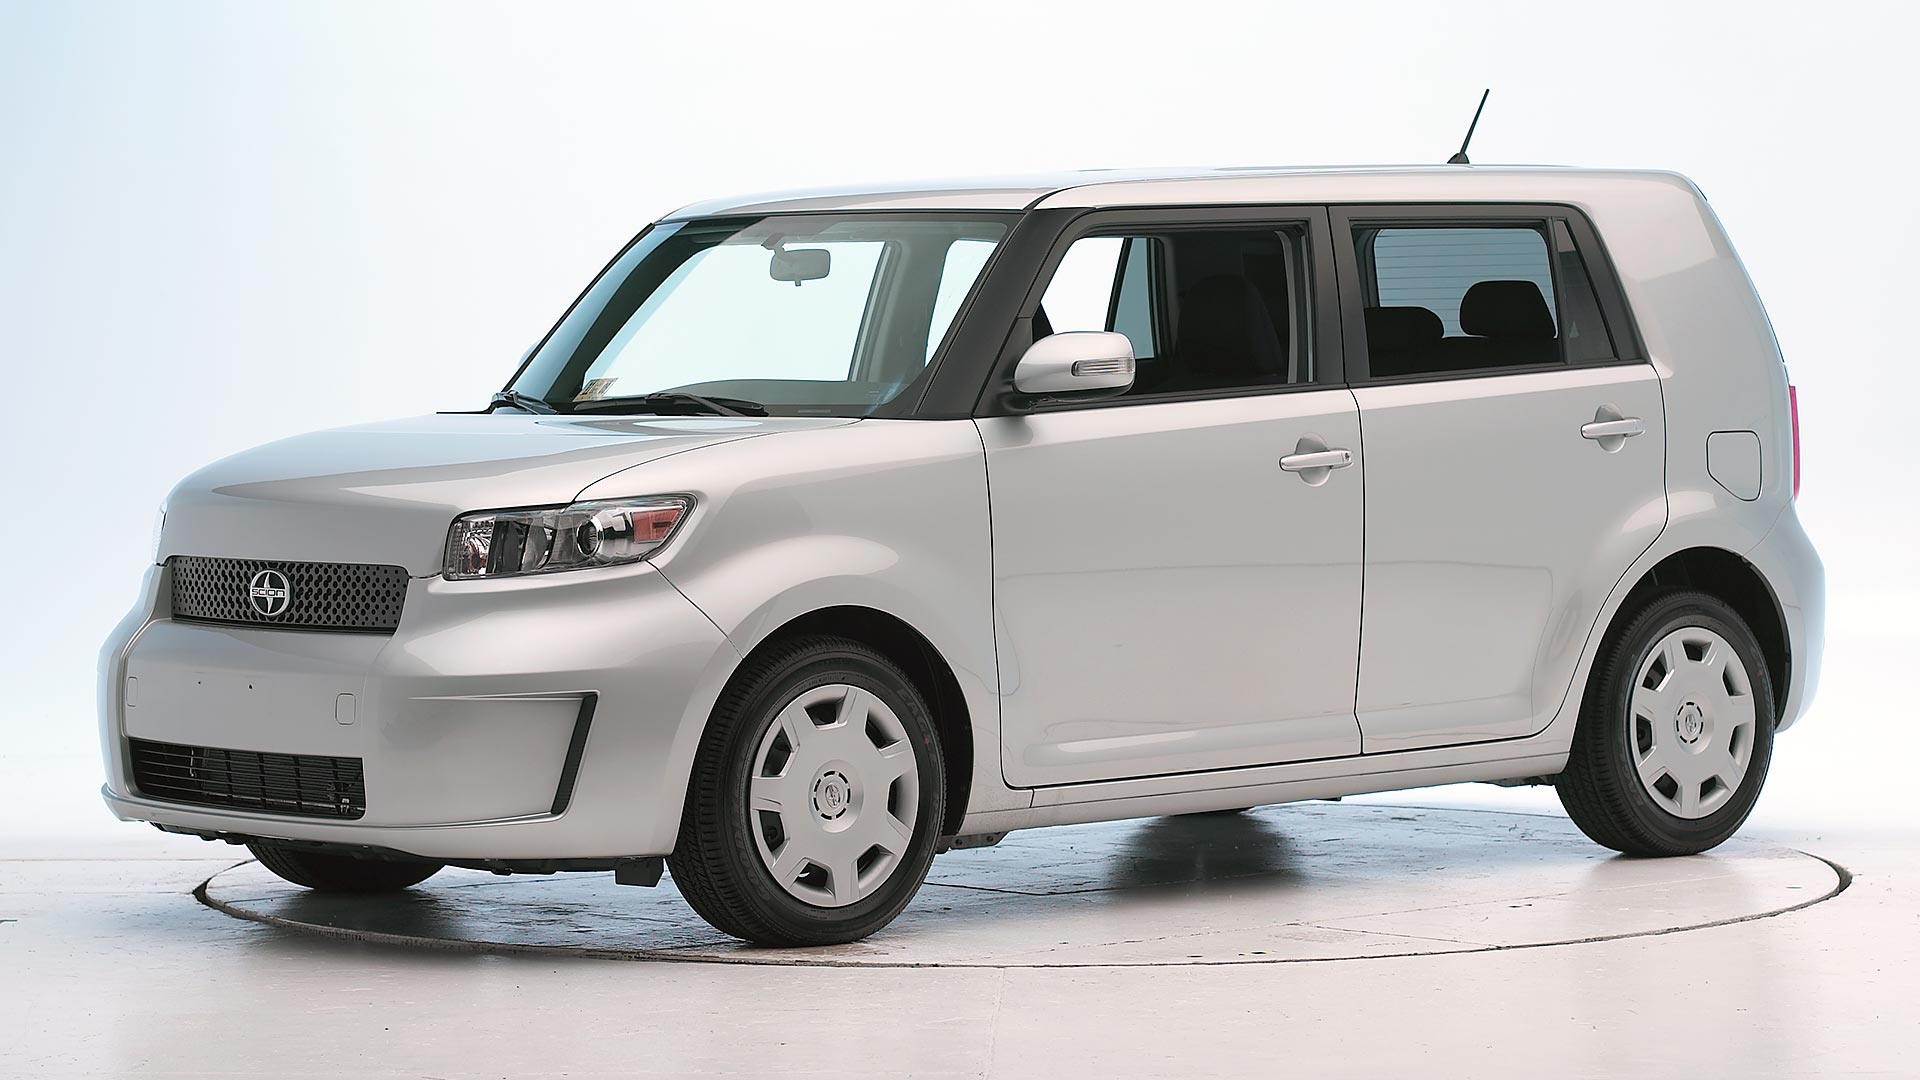 2013 Scion xB 4-door wagon